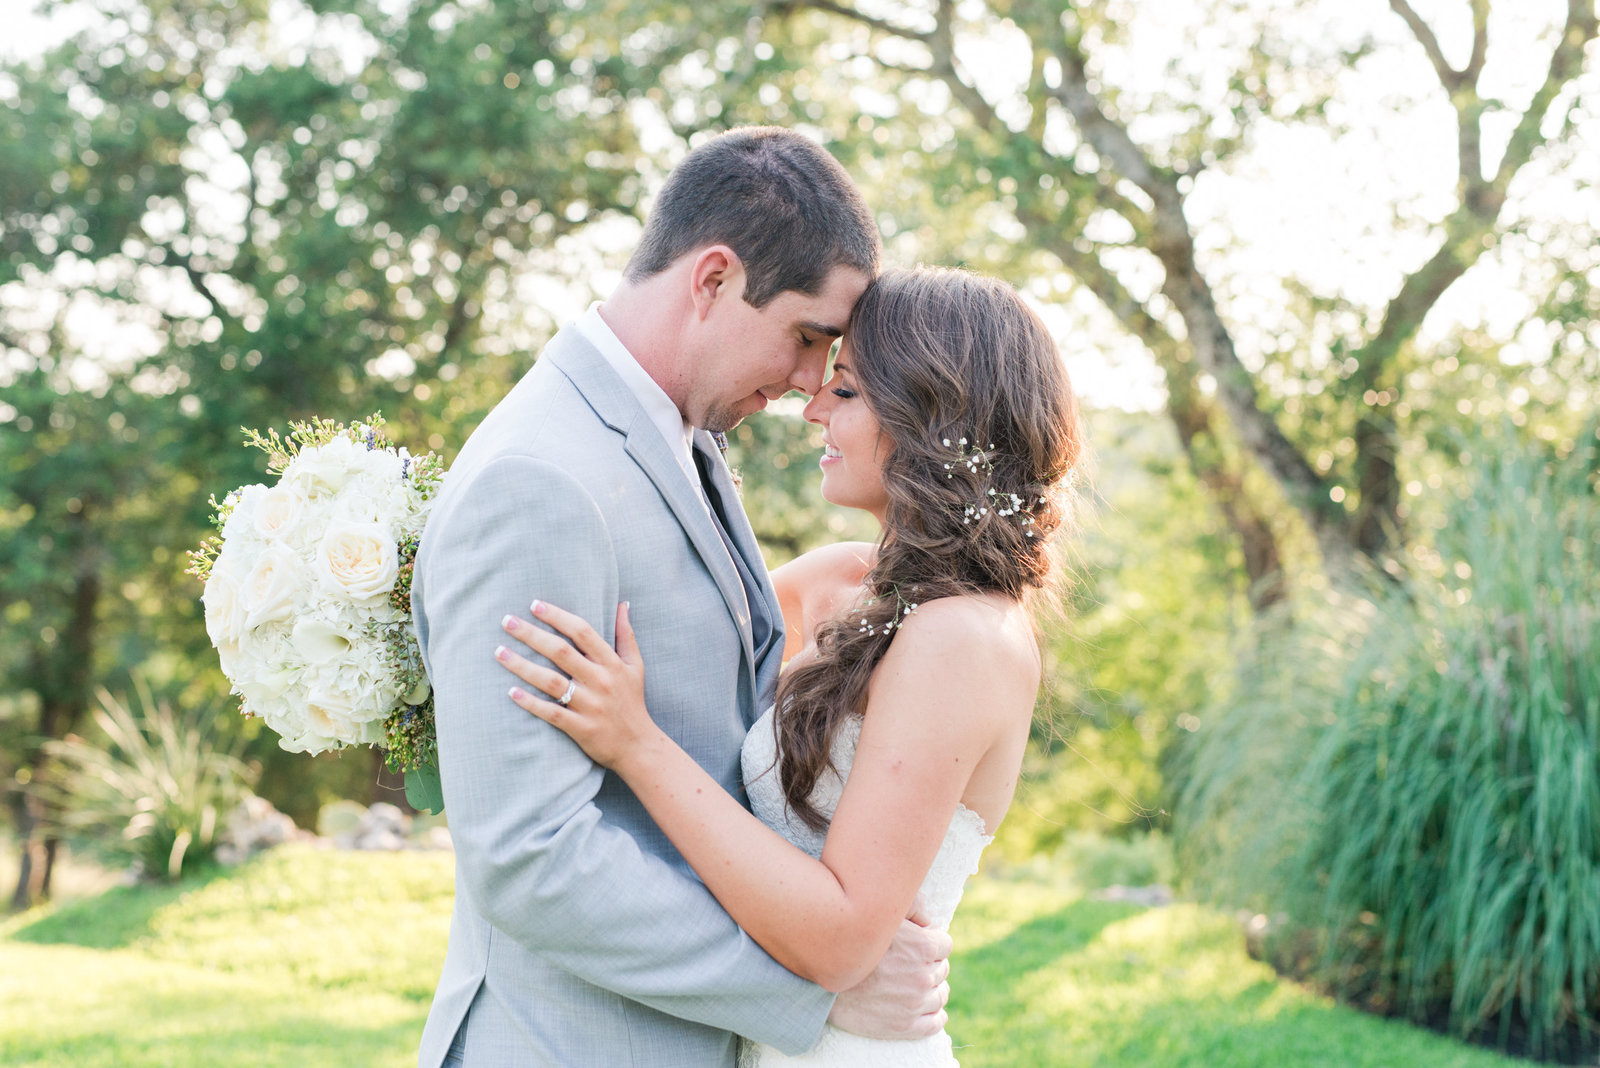 Gray and Cream colored wedding at The Springs in Georgetown shared by recommended wedding photography team